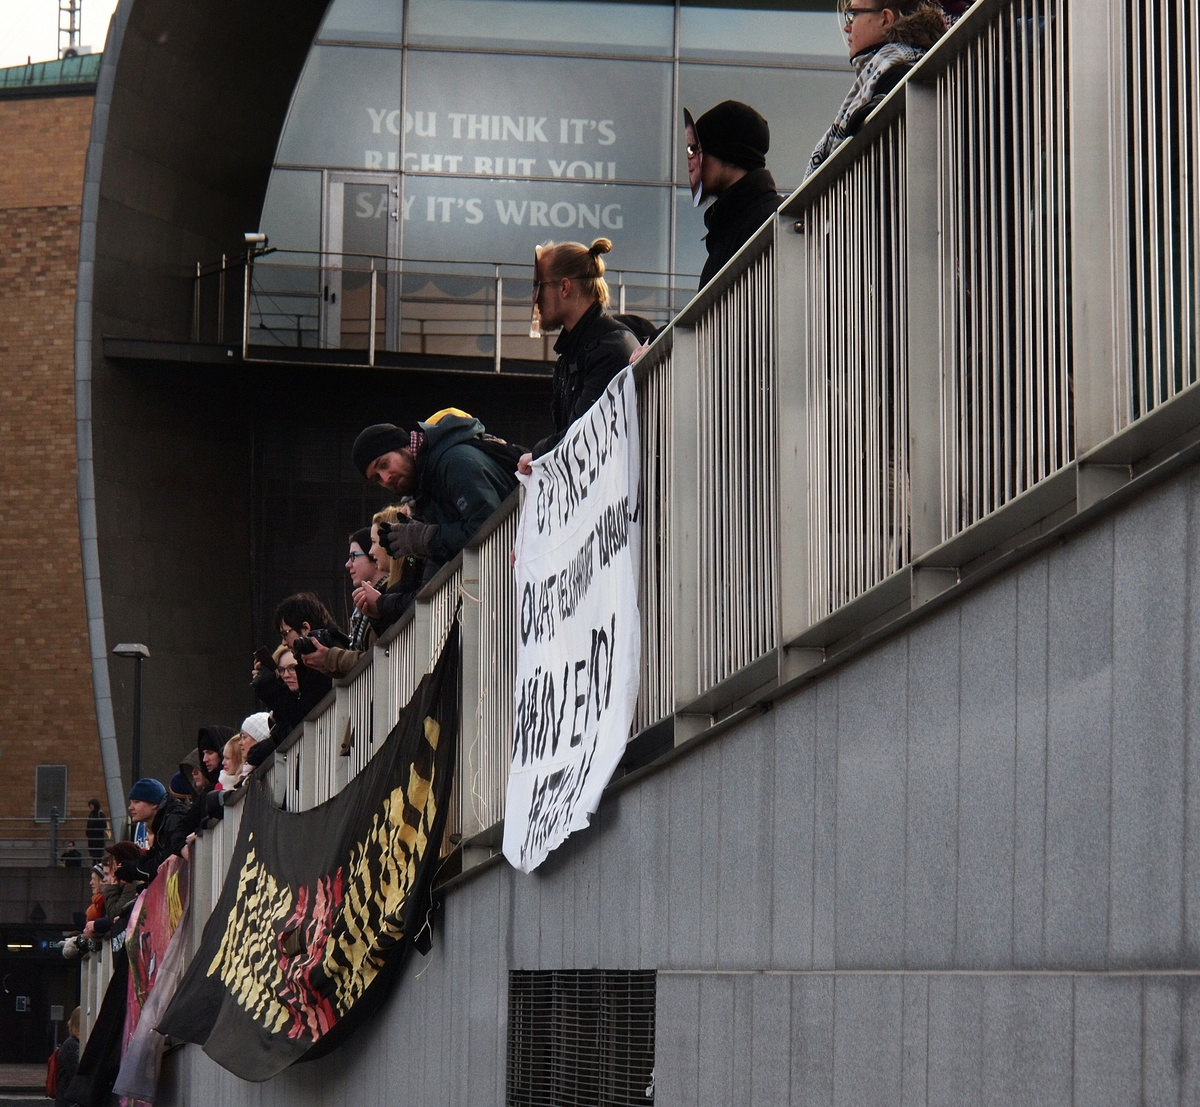 Kiasma unintentionally joins the protest. Photo by Morgan Walker, Finland Today